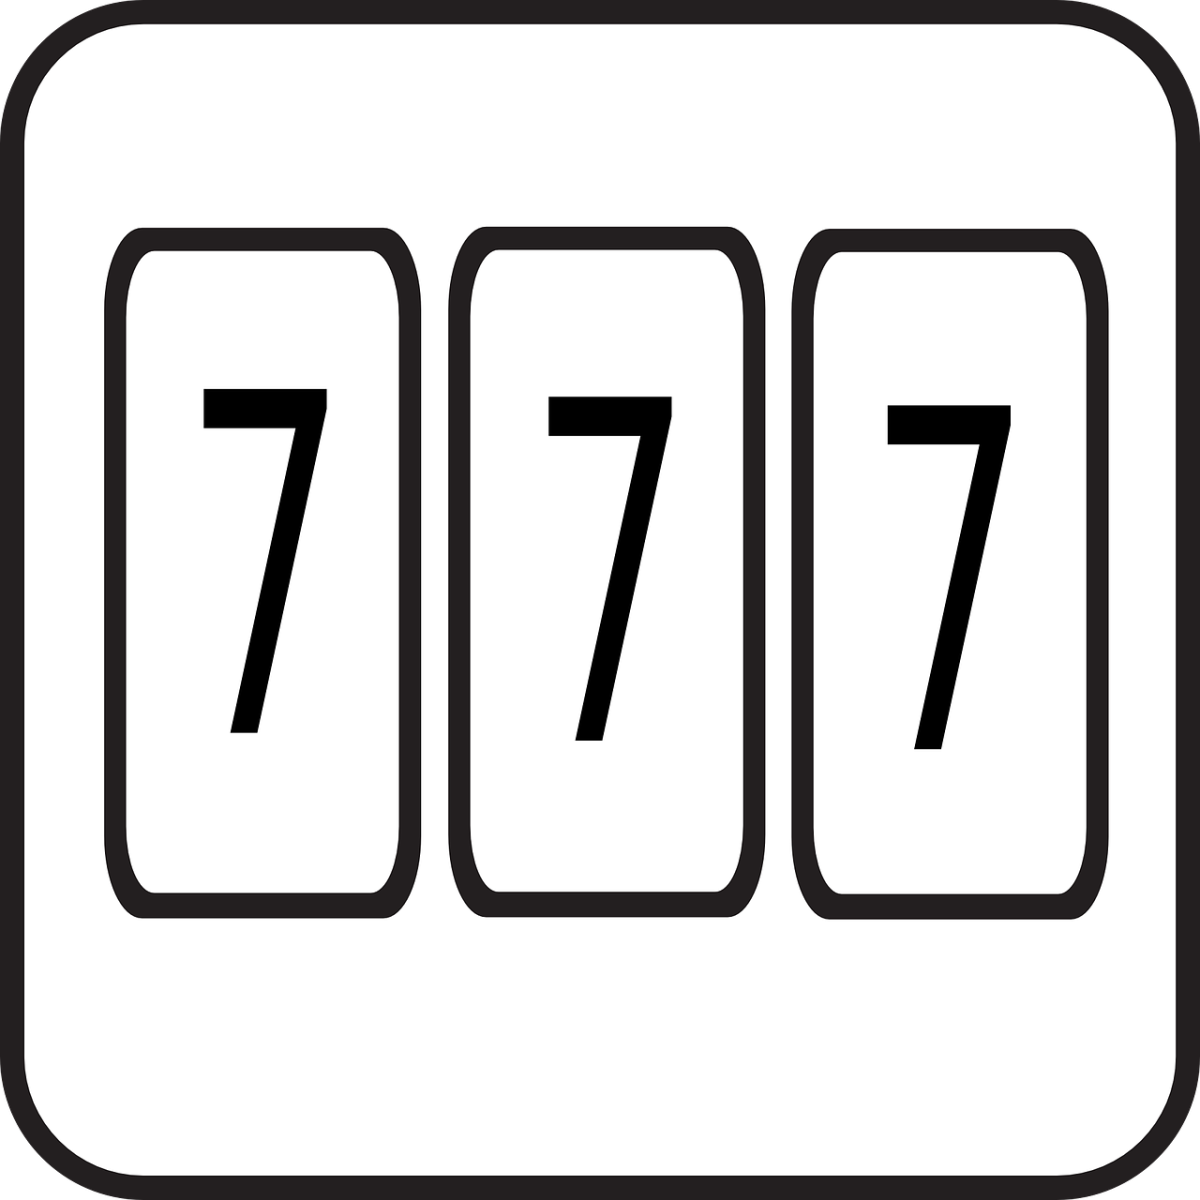 The numbers 777 symbolizing part of the album's title.